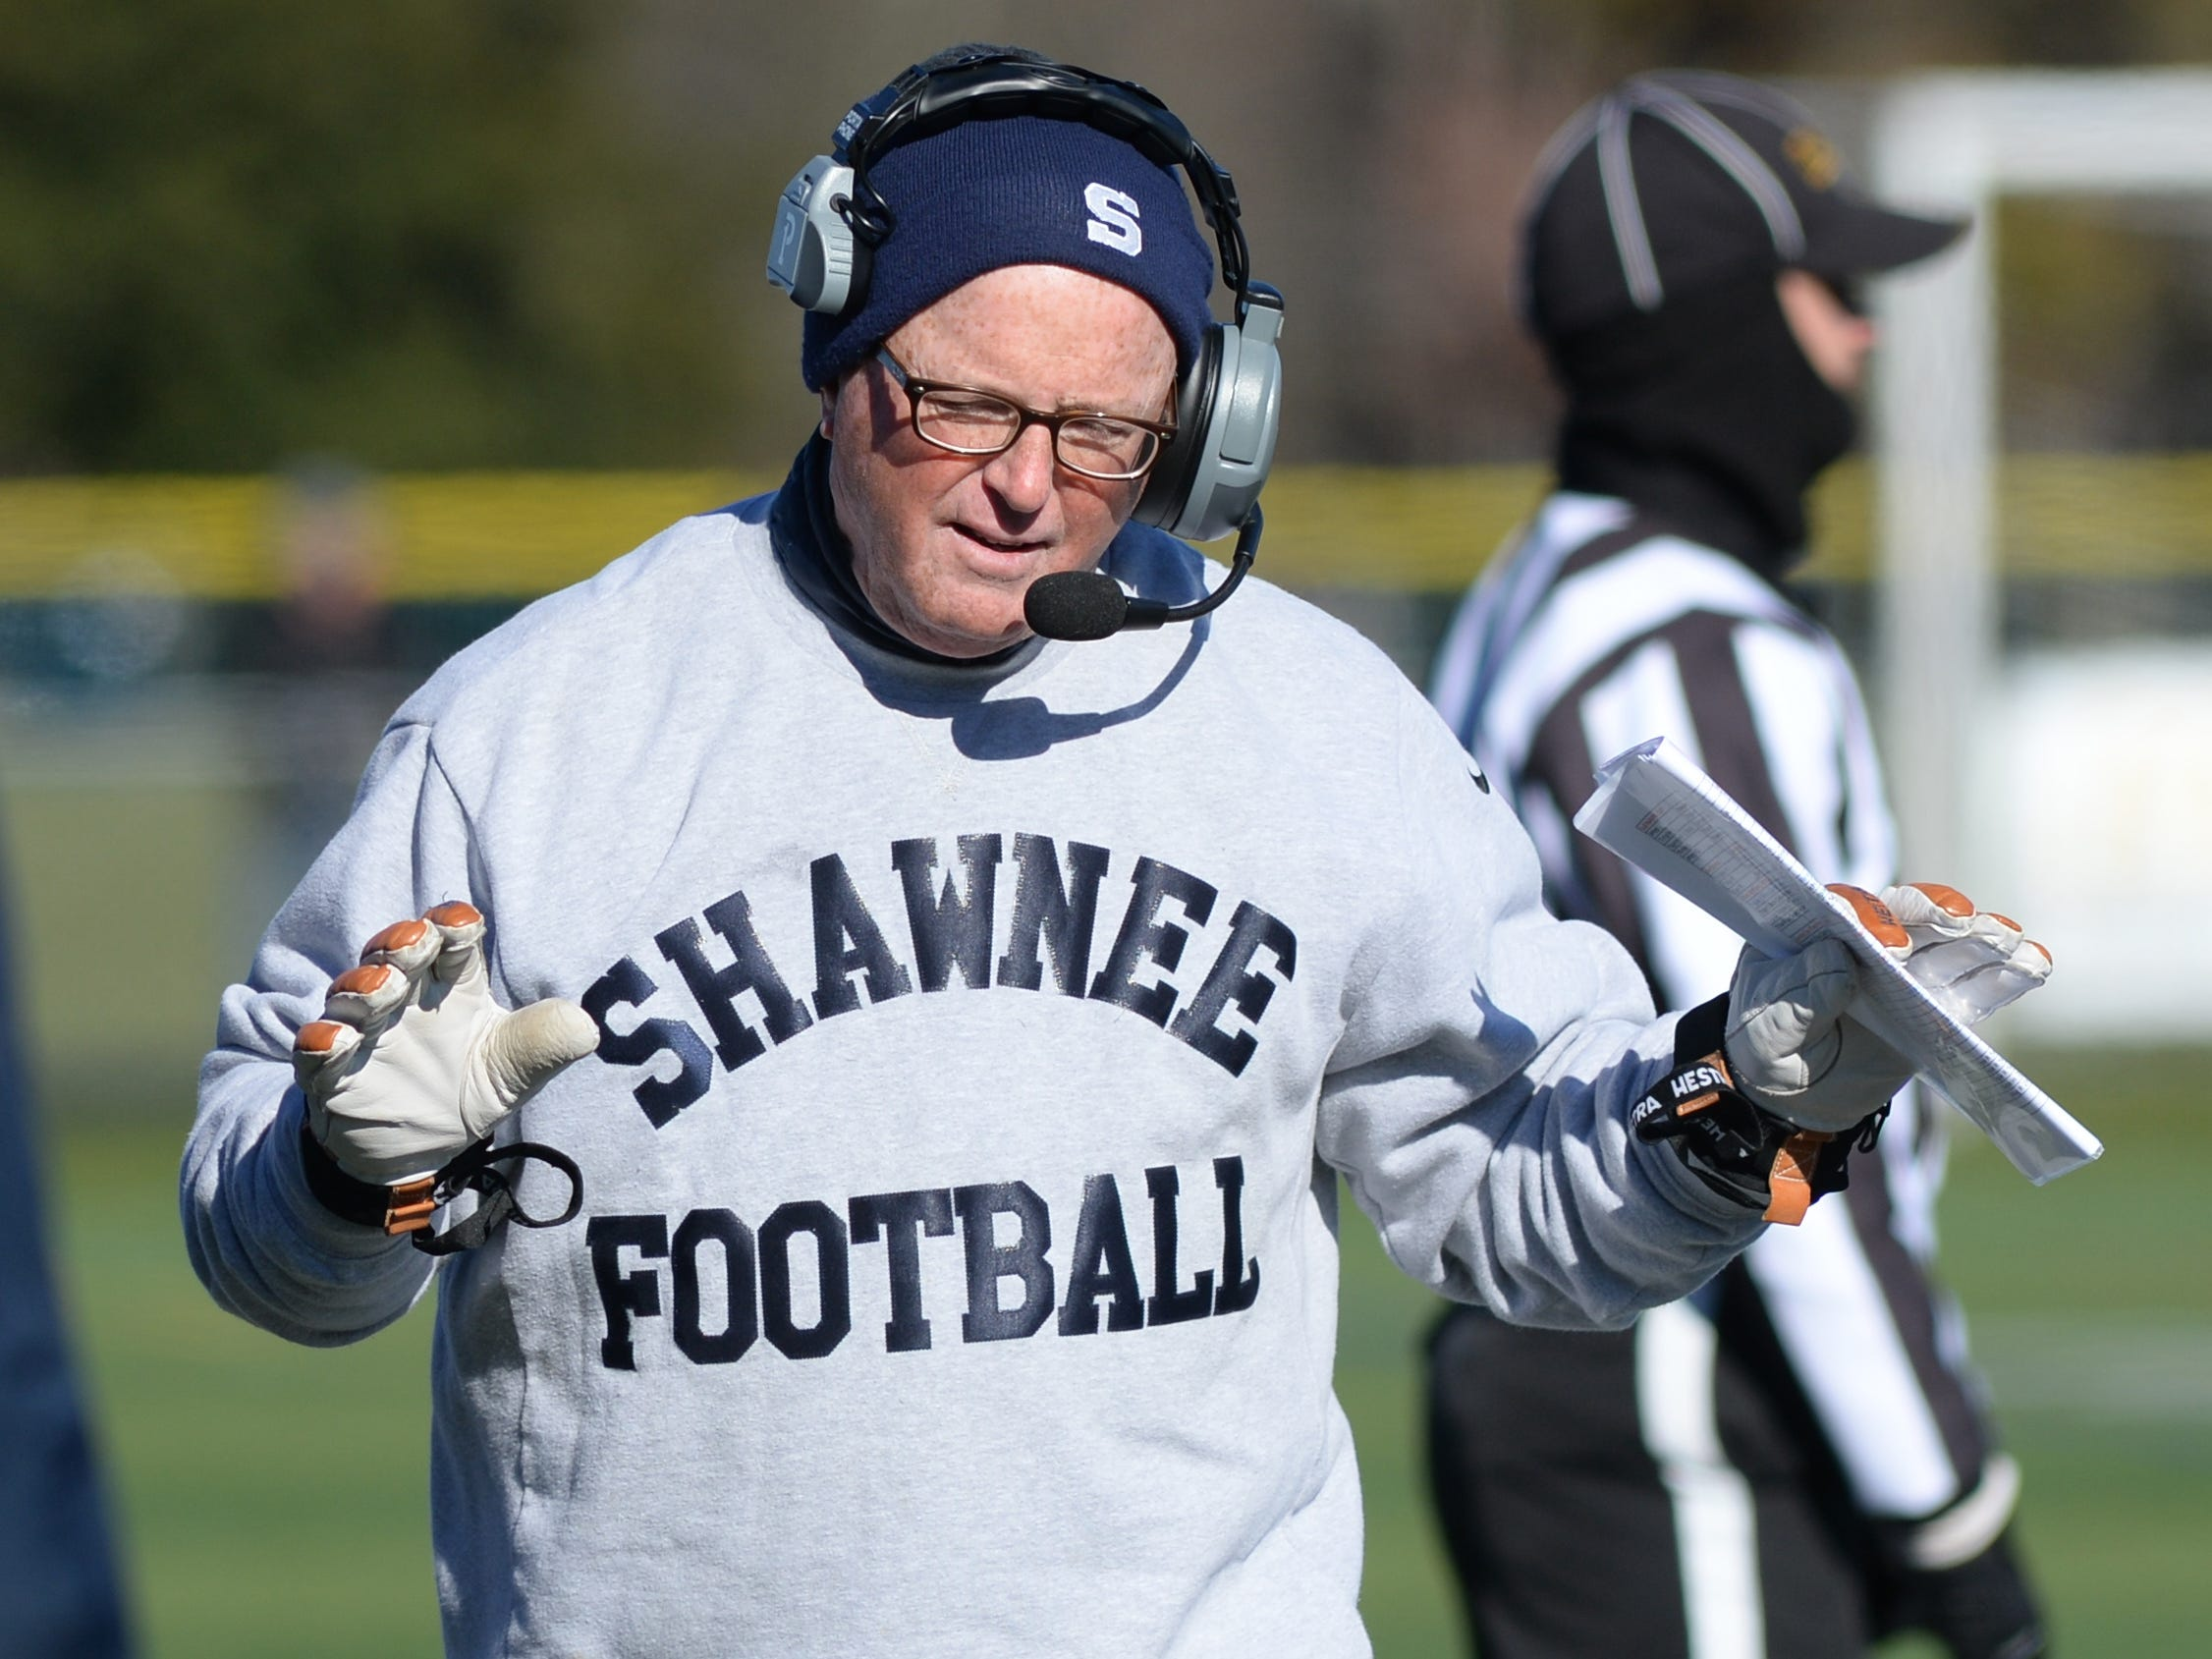 Shawnee's coach Tim Gushue talks with his coaching staff during the Thanksgiving Day football game against Lenape at Shawnee High School, Thursday, Nov. 22, 2018.